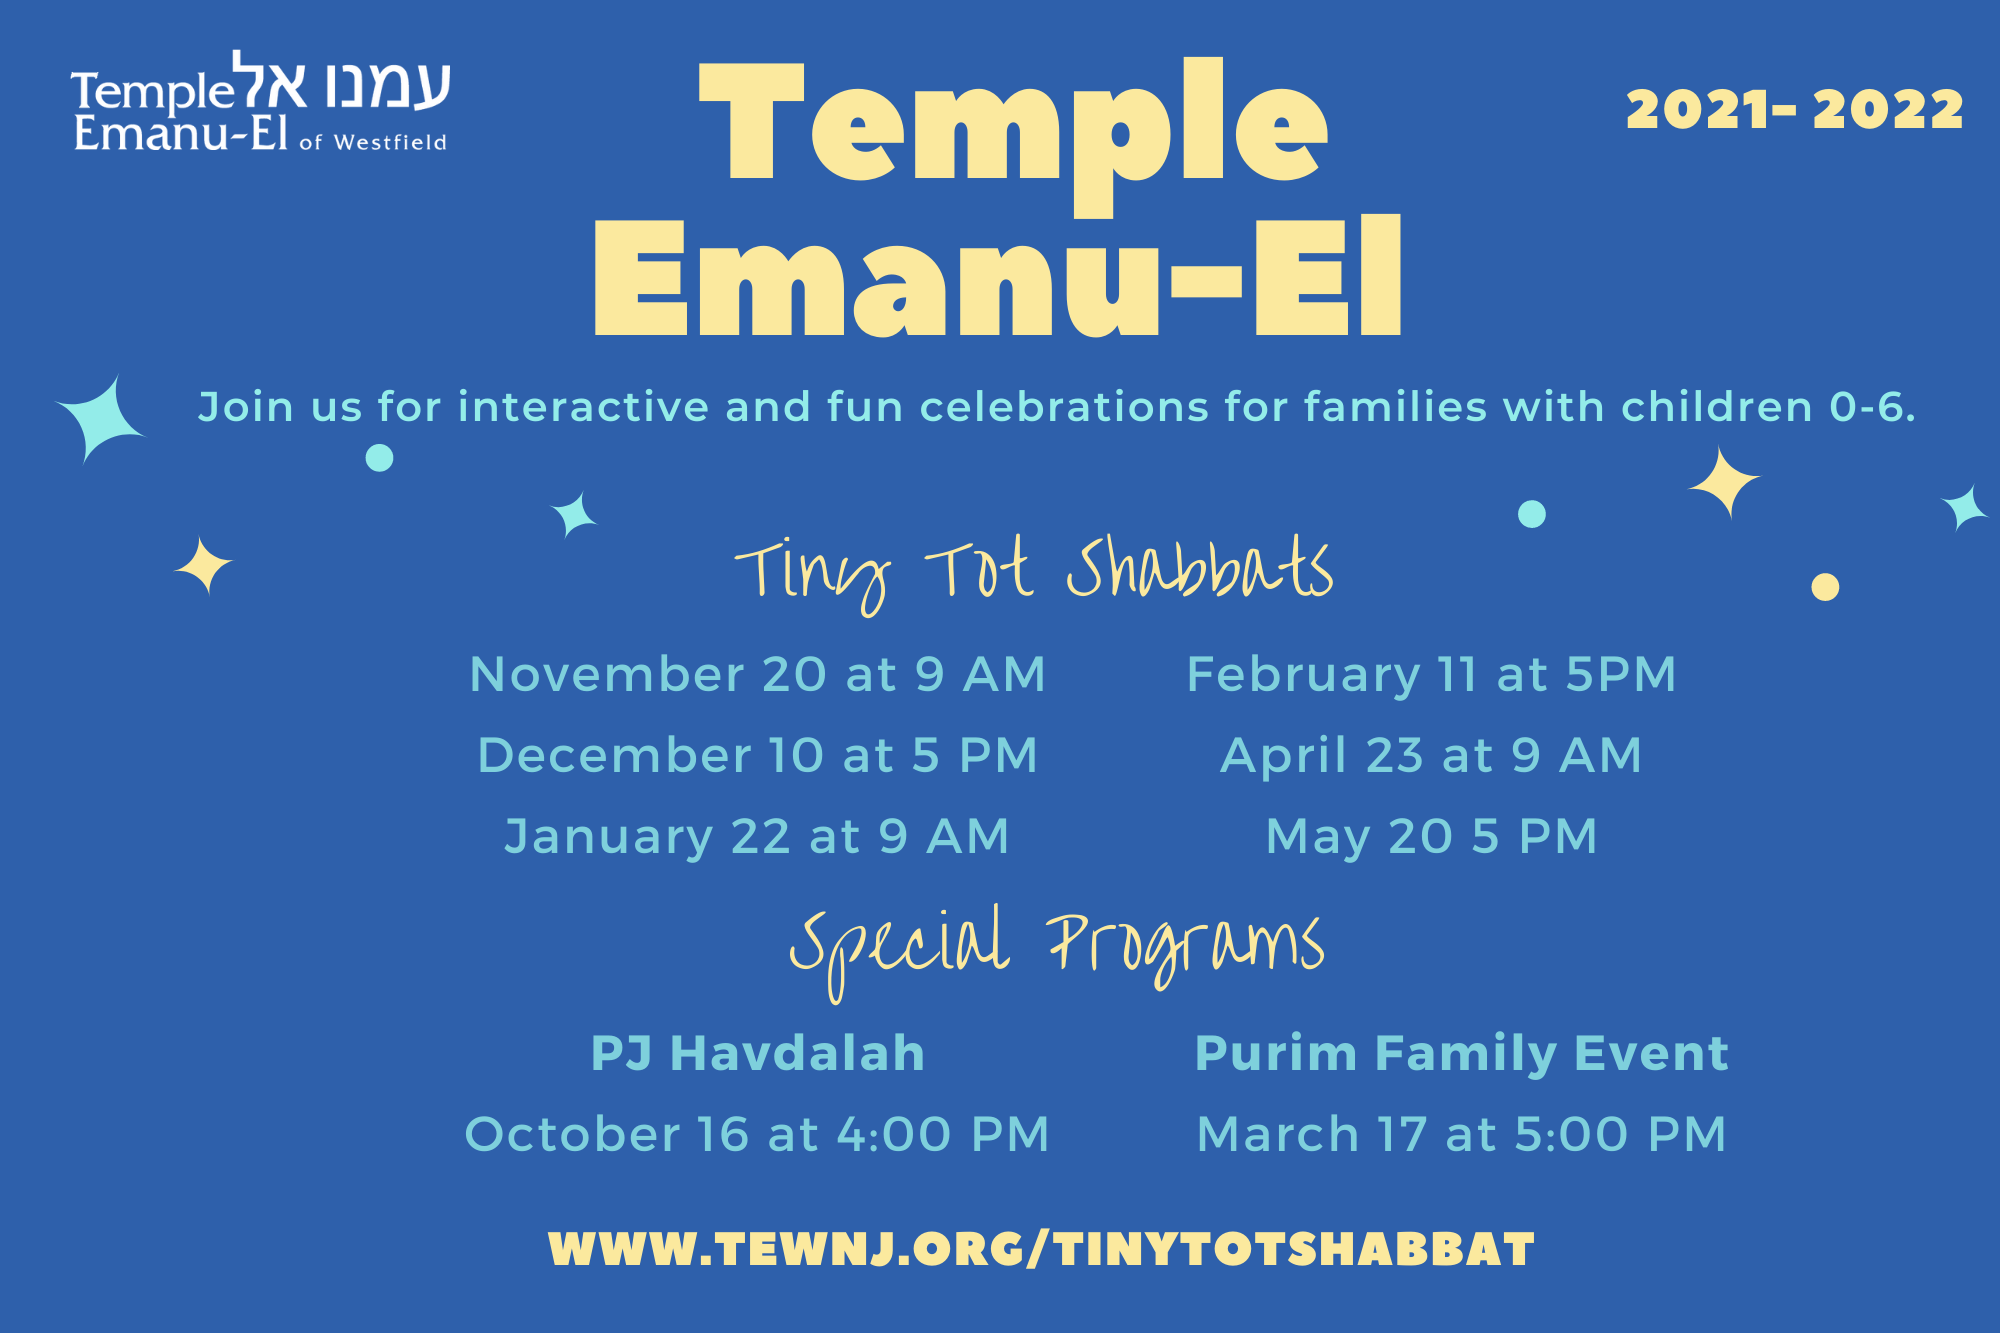 TINY TOT SHABBAT (may want to specify Fridays vs Saturdays….) November 20th 9am December 10th 5pm January 22nd 9am February 11th 5pm April 23rd 9am May 20th 5pm (1)